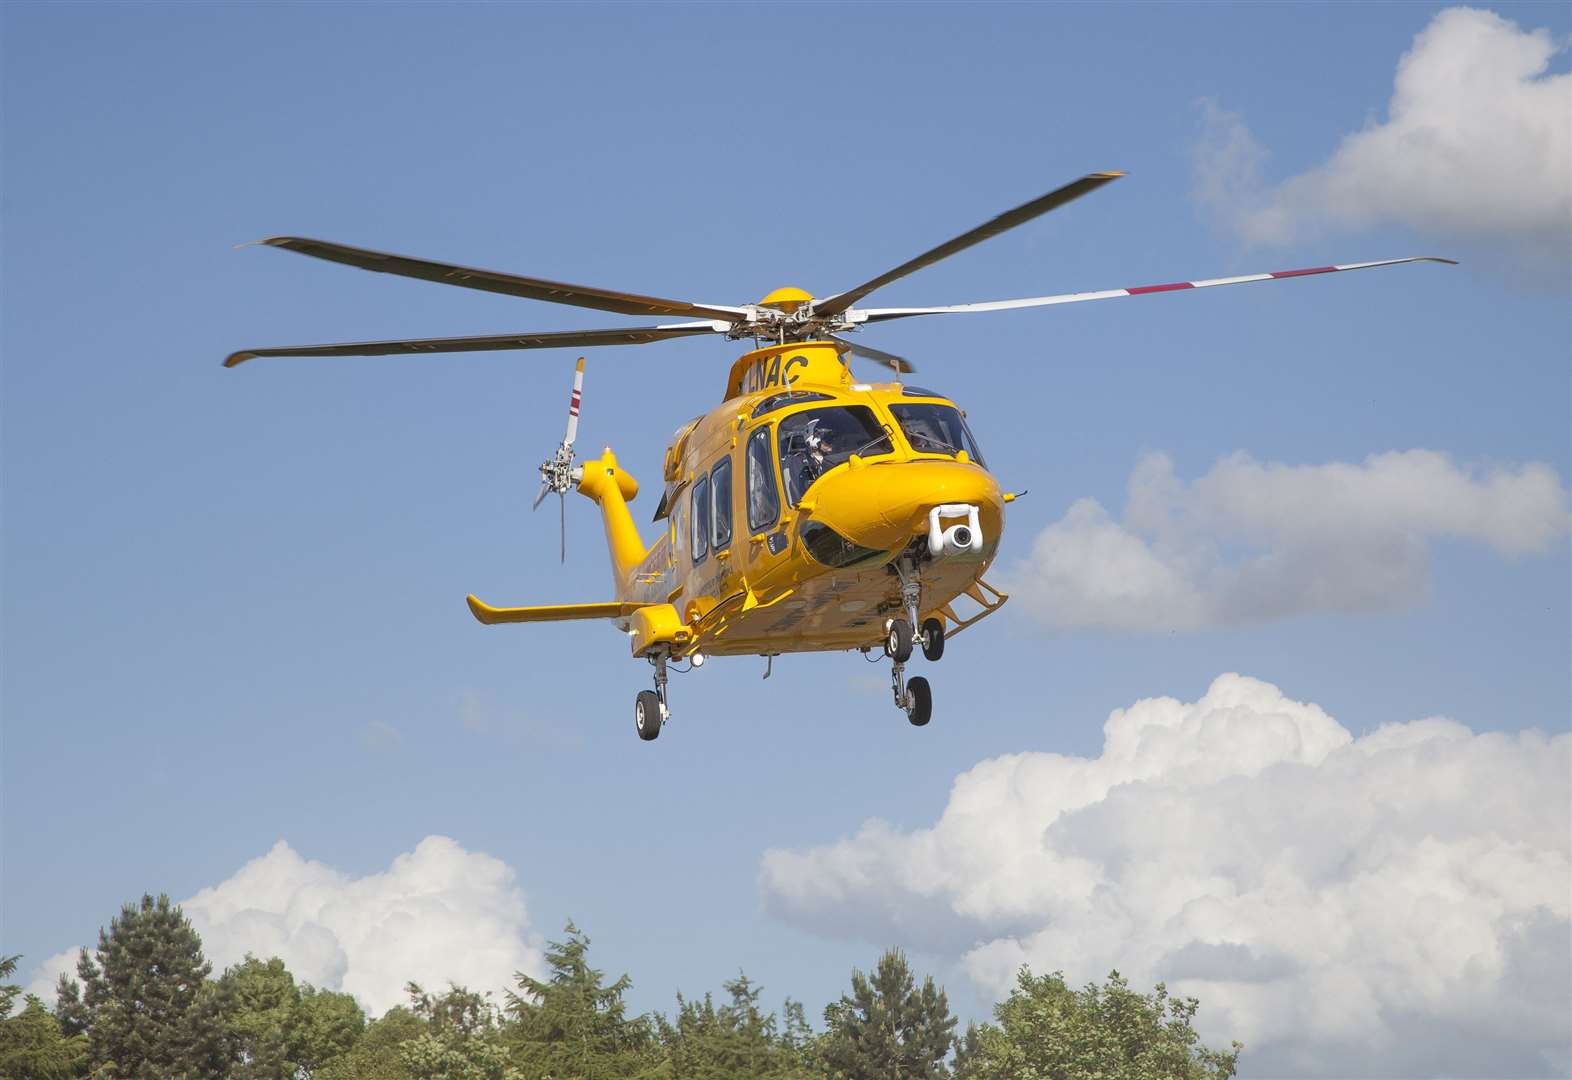 Air ambulance called to incident near village